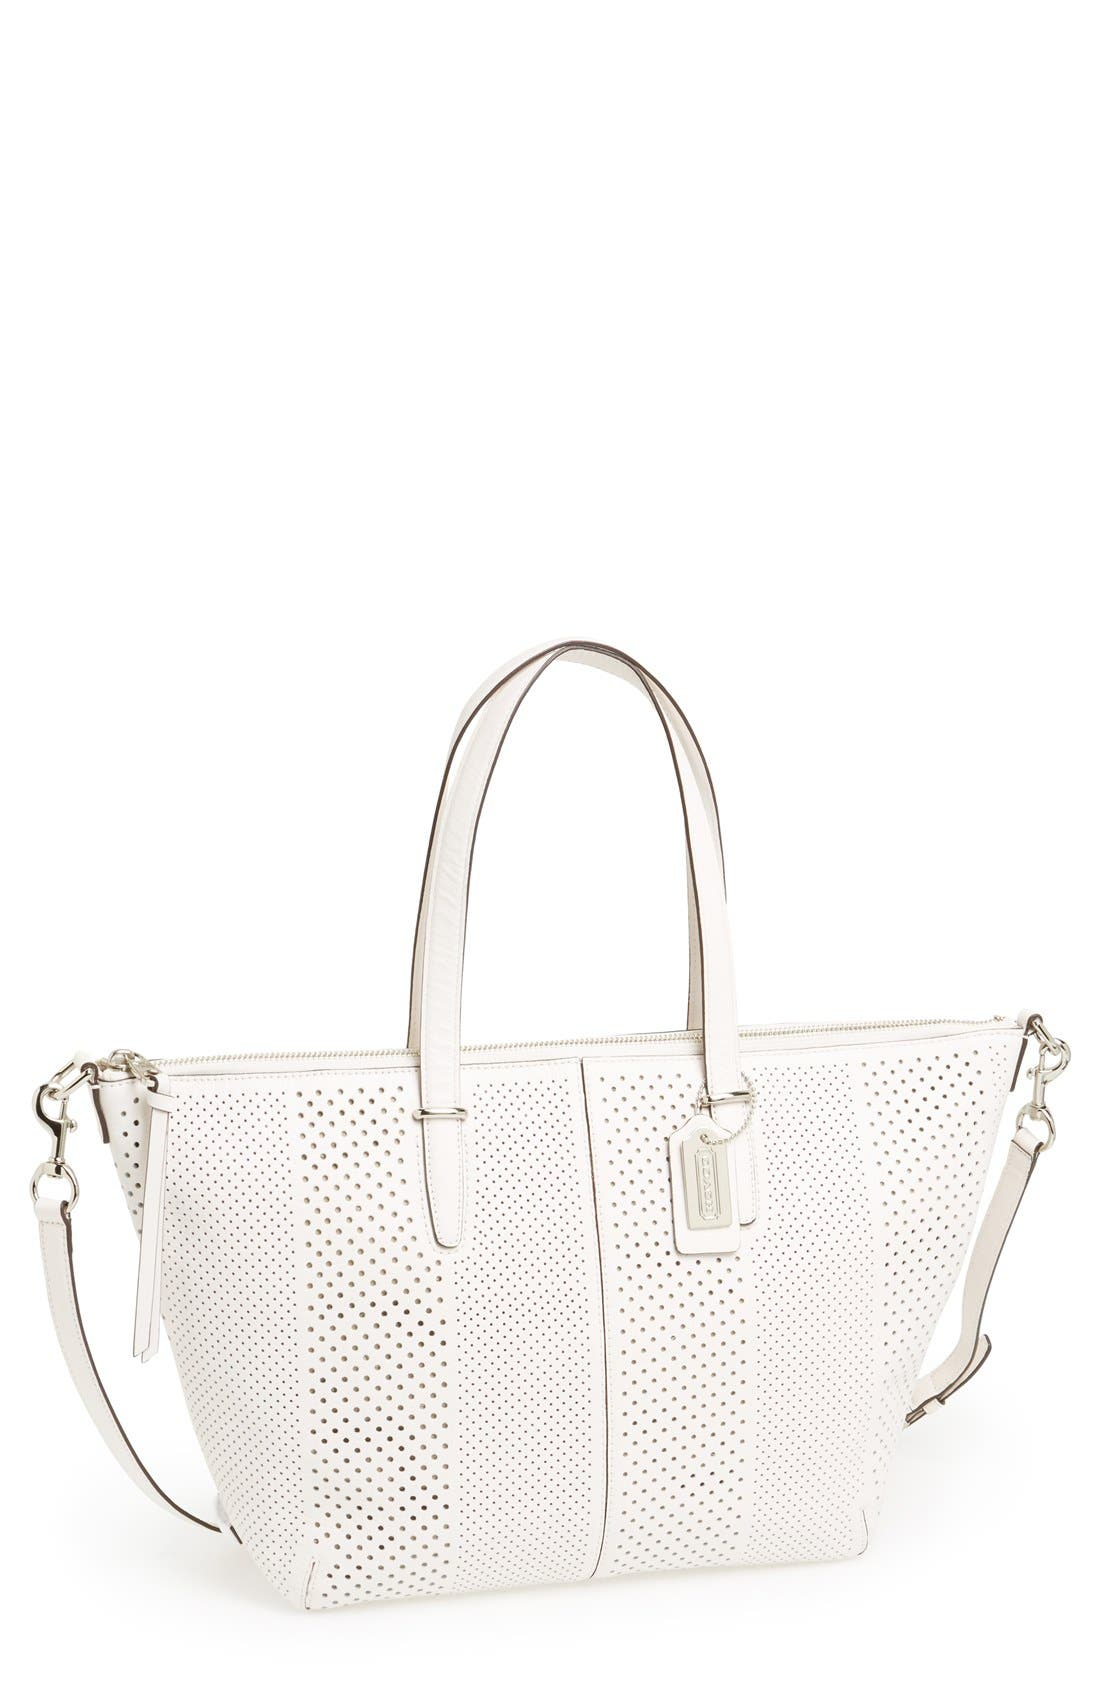 Main Image - COACH 'Bleecker' Perforated Leather Satchel